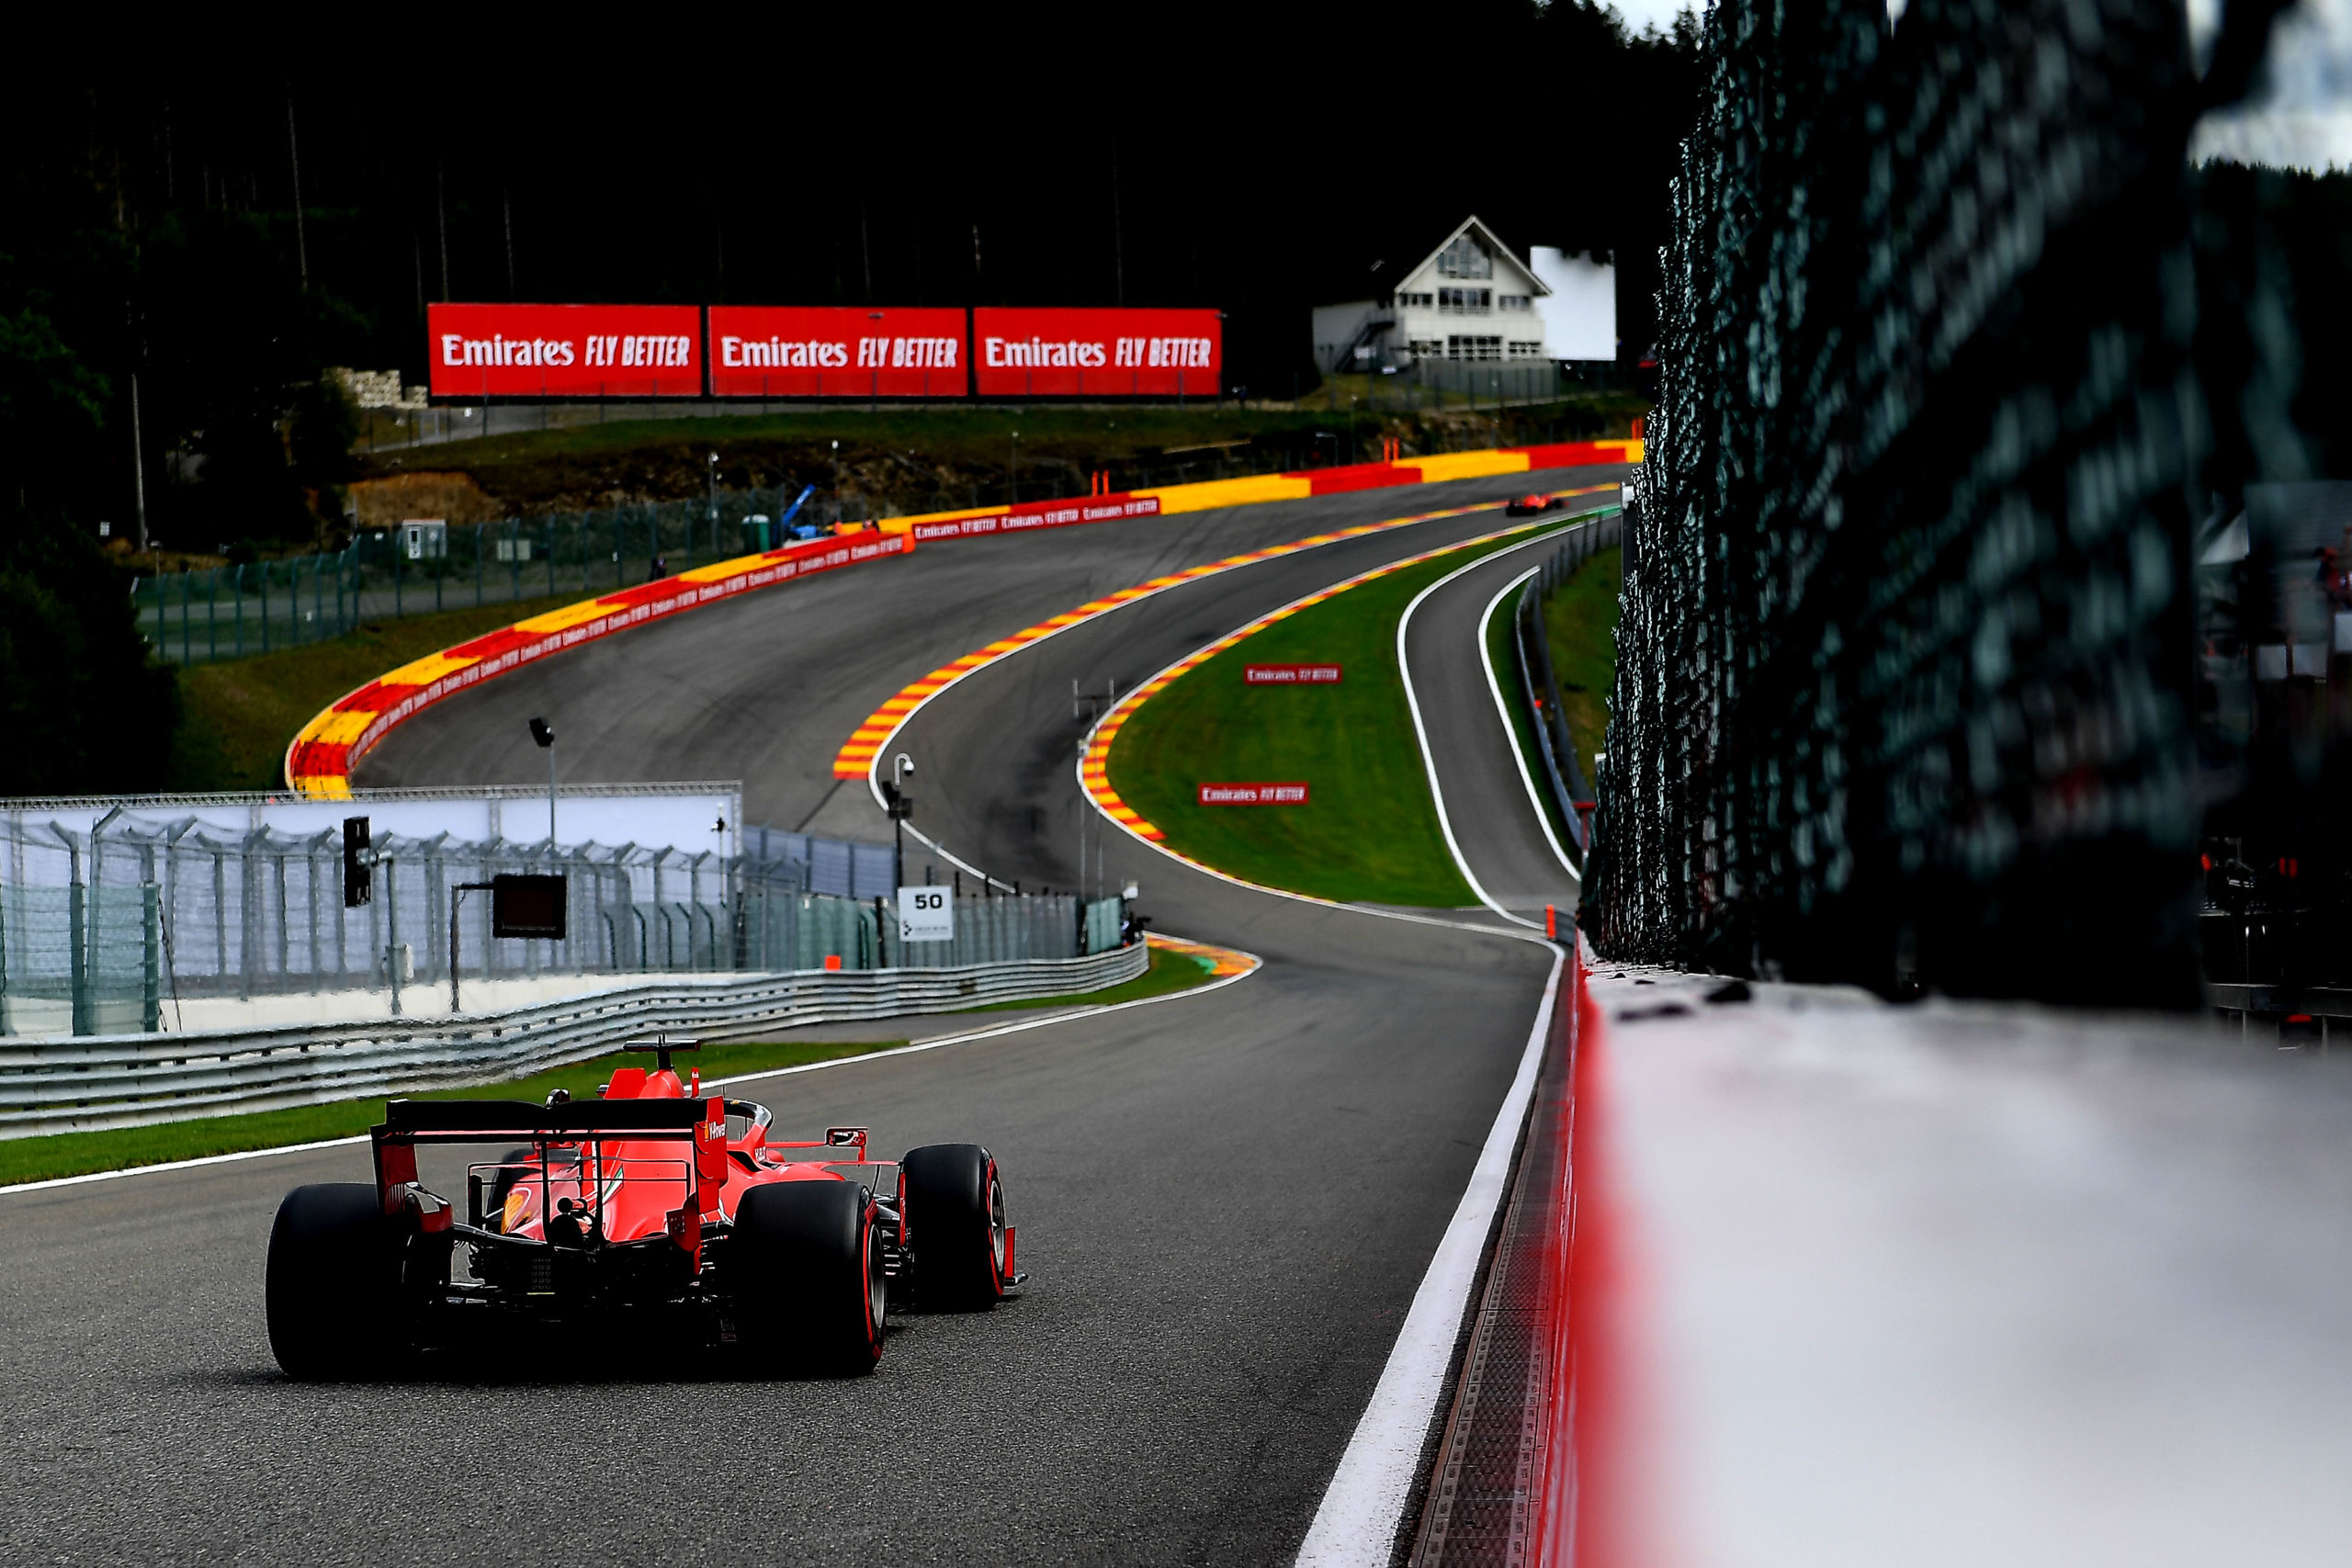 GP da Bélgica - Classificação da Ferrari - Foto: Media Ferrari